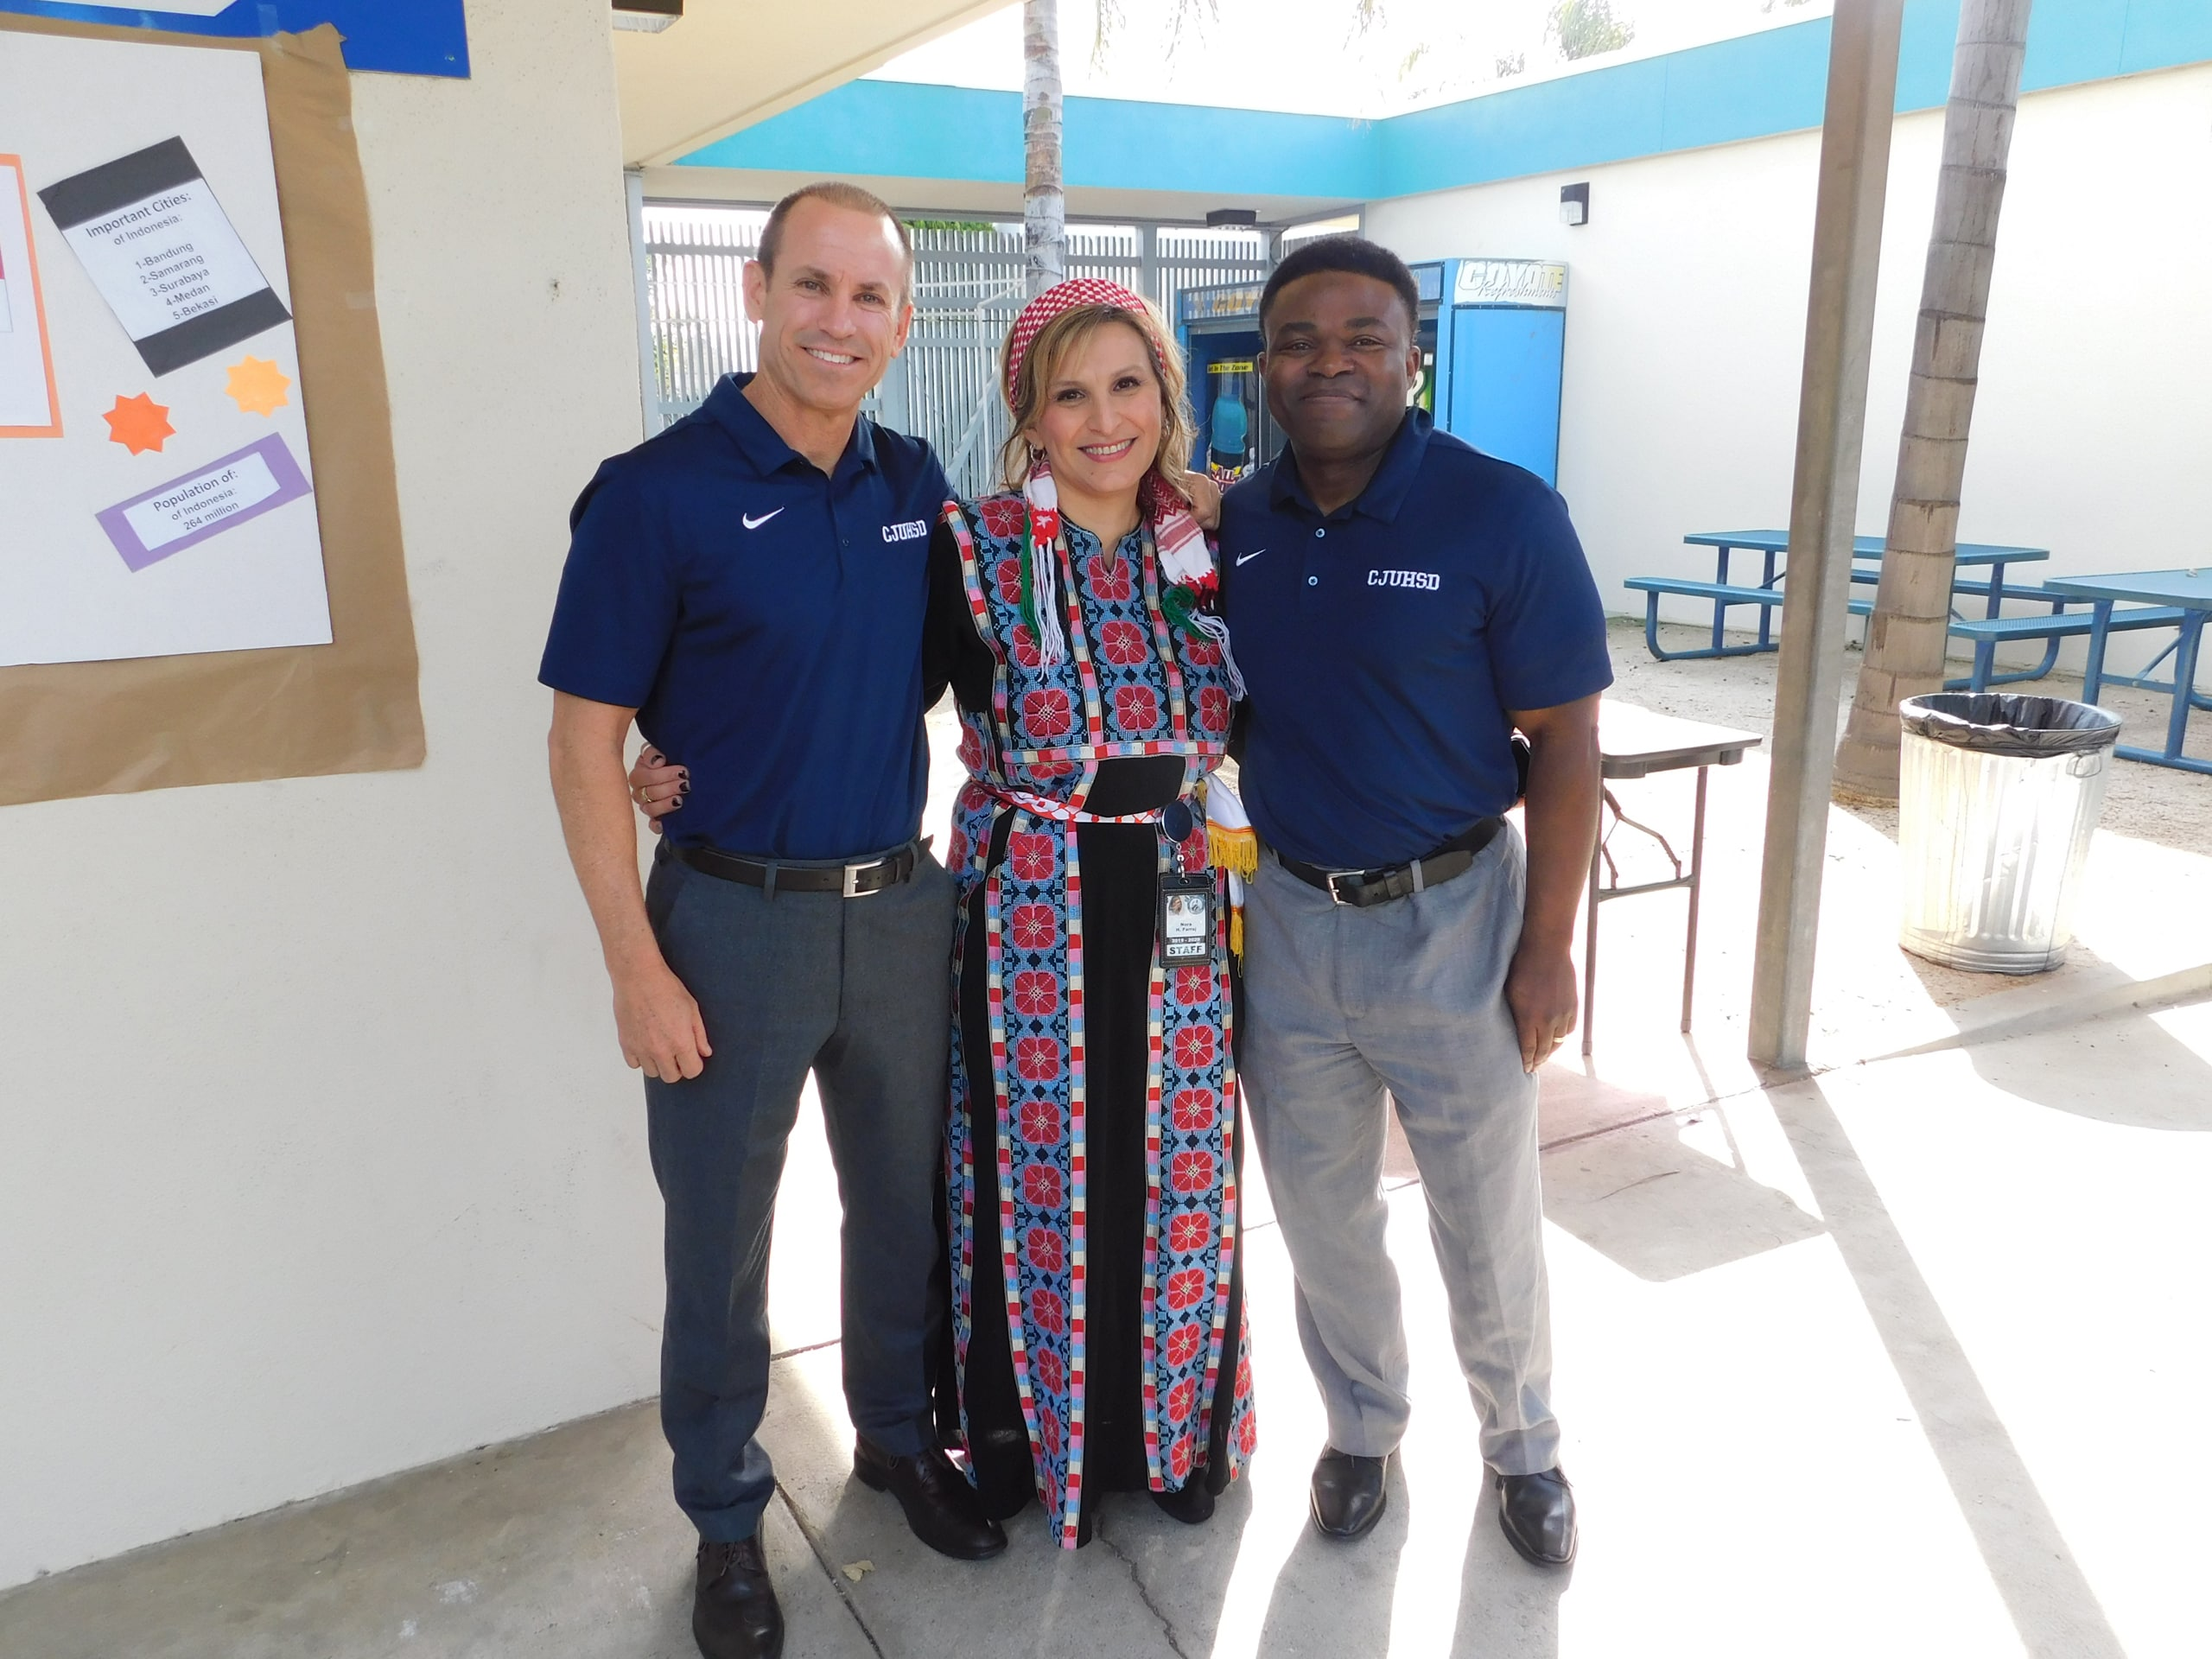 Superintendent Dr. Holton, AP Nora H. Farraj, and Assistant Superintendent Dr. Oduro